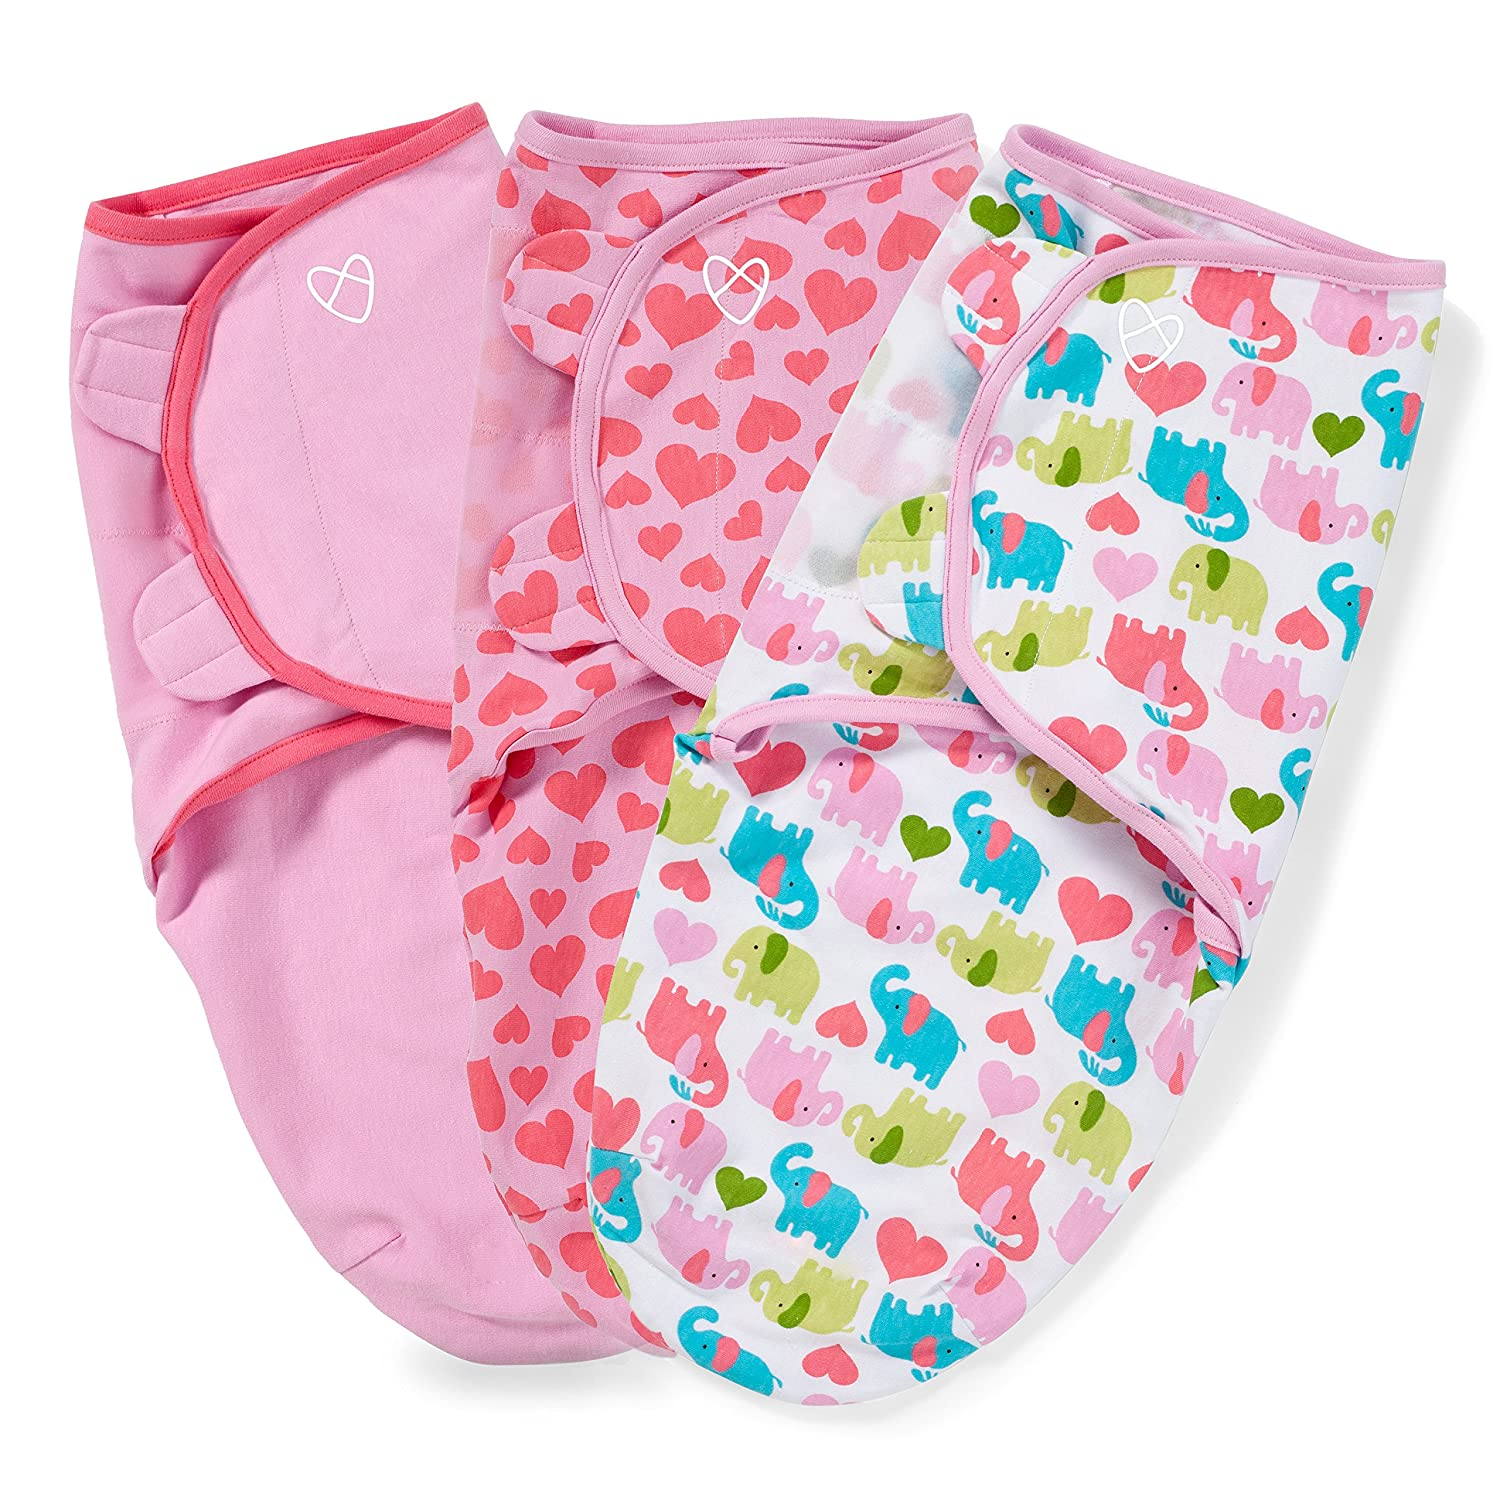 SwaddleMe Original Swaddle 3-PK, Who Loves You (SM) Summer Infant 54095